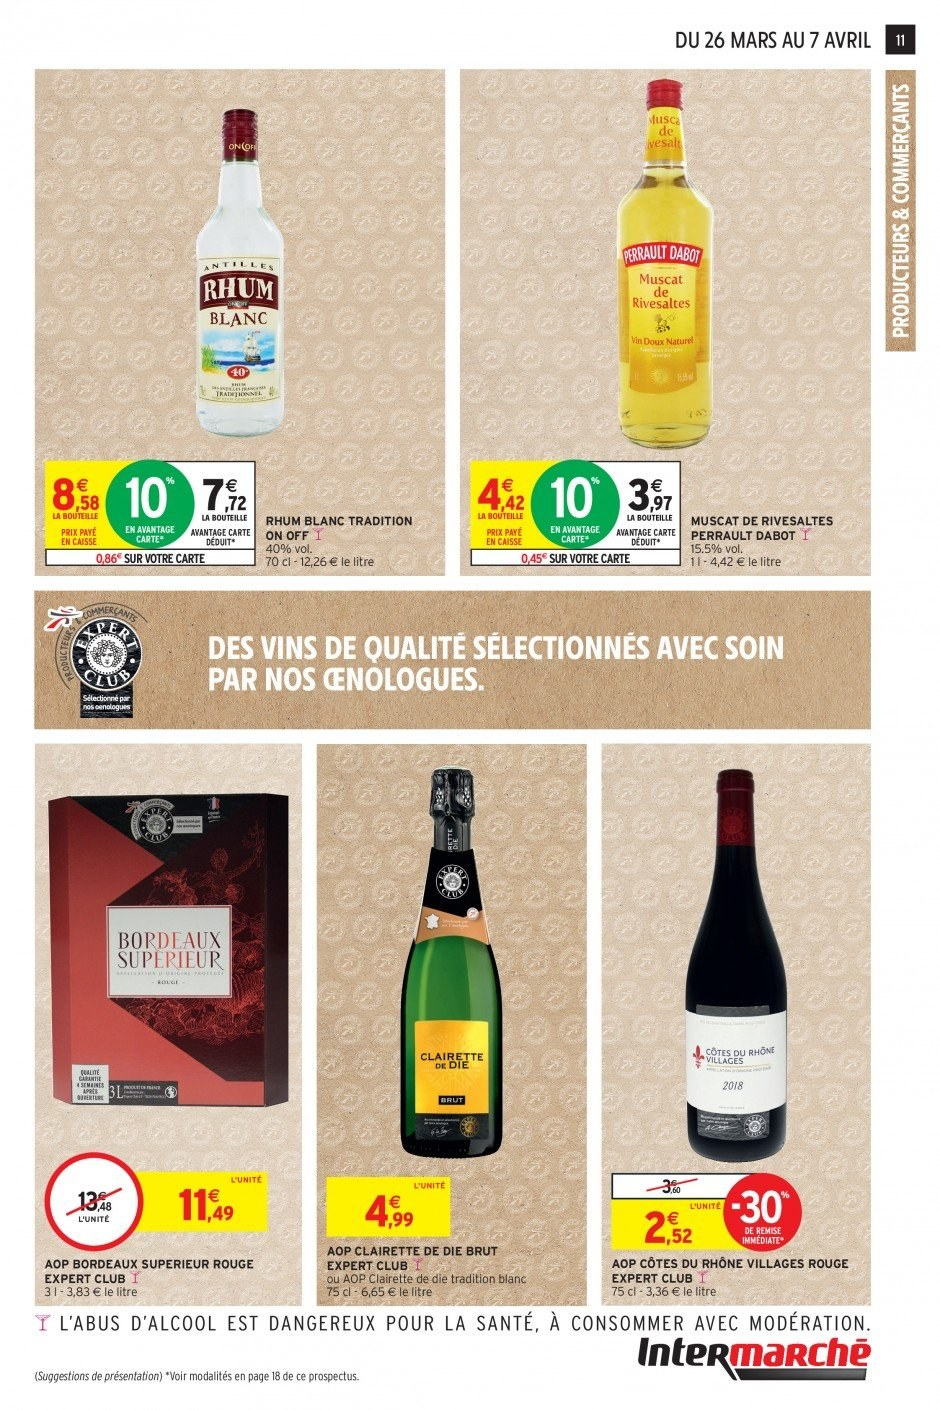 Catalogue Intermarché - 26.03.2019 - 07.04.2019. Page 11.